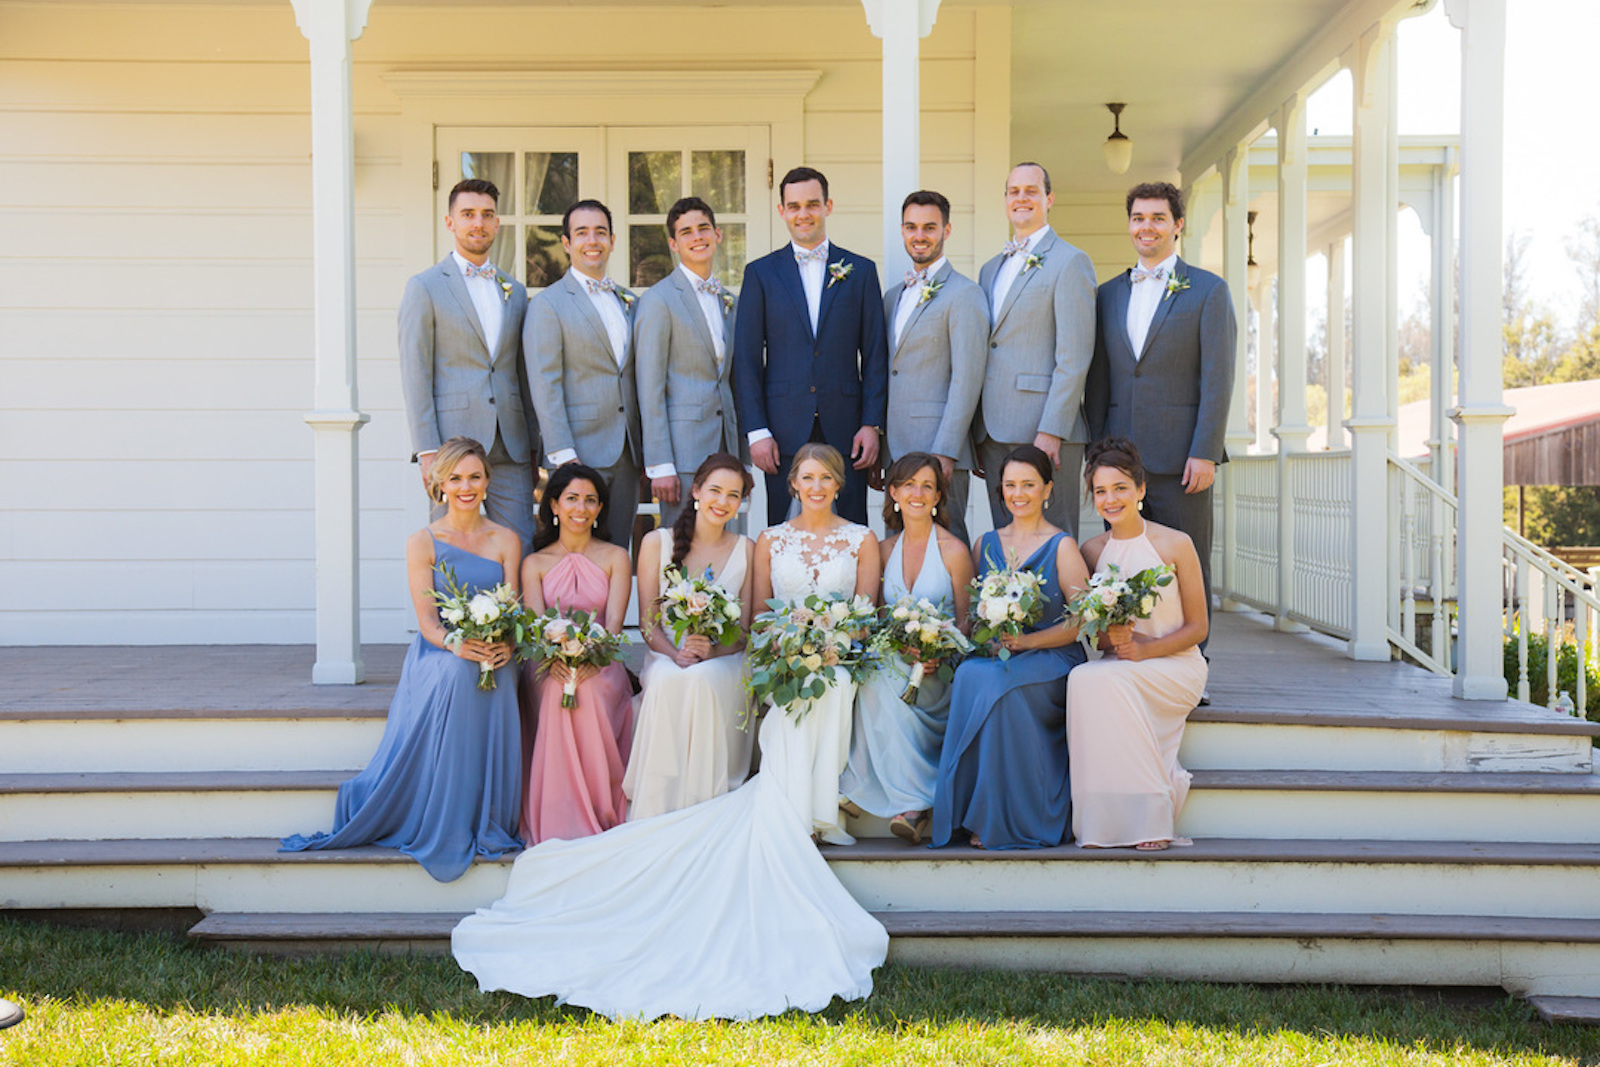 Bridal Party vs. Wedding Party: What's the Difference? | Zola Expert Wedding  Advice